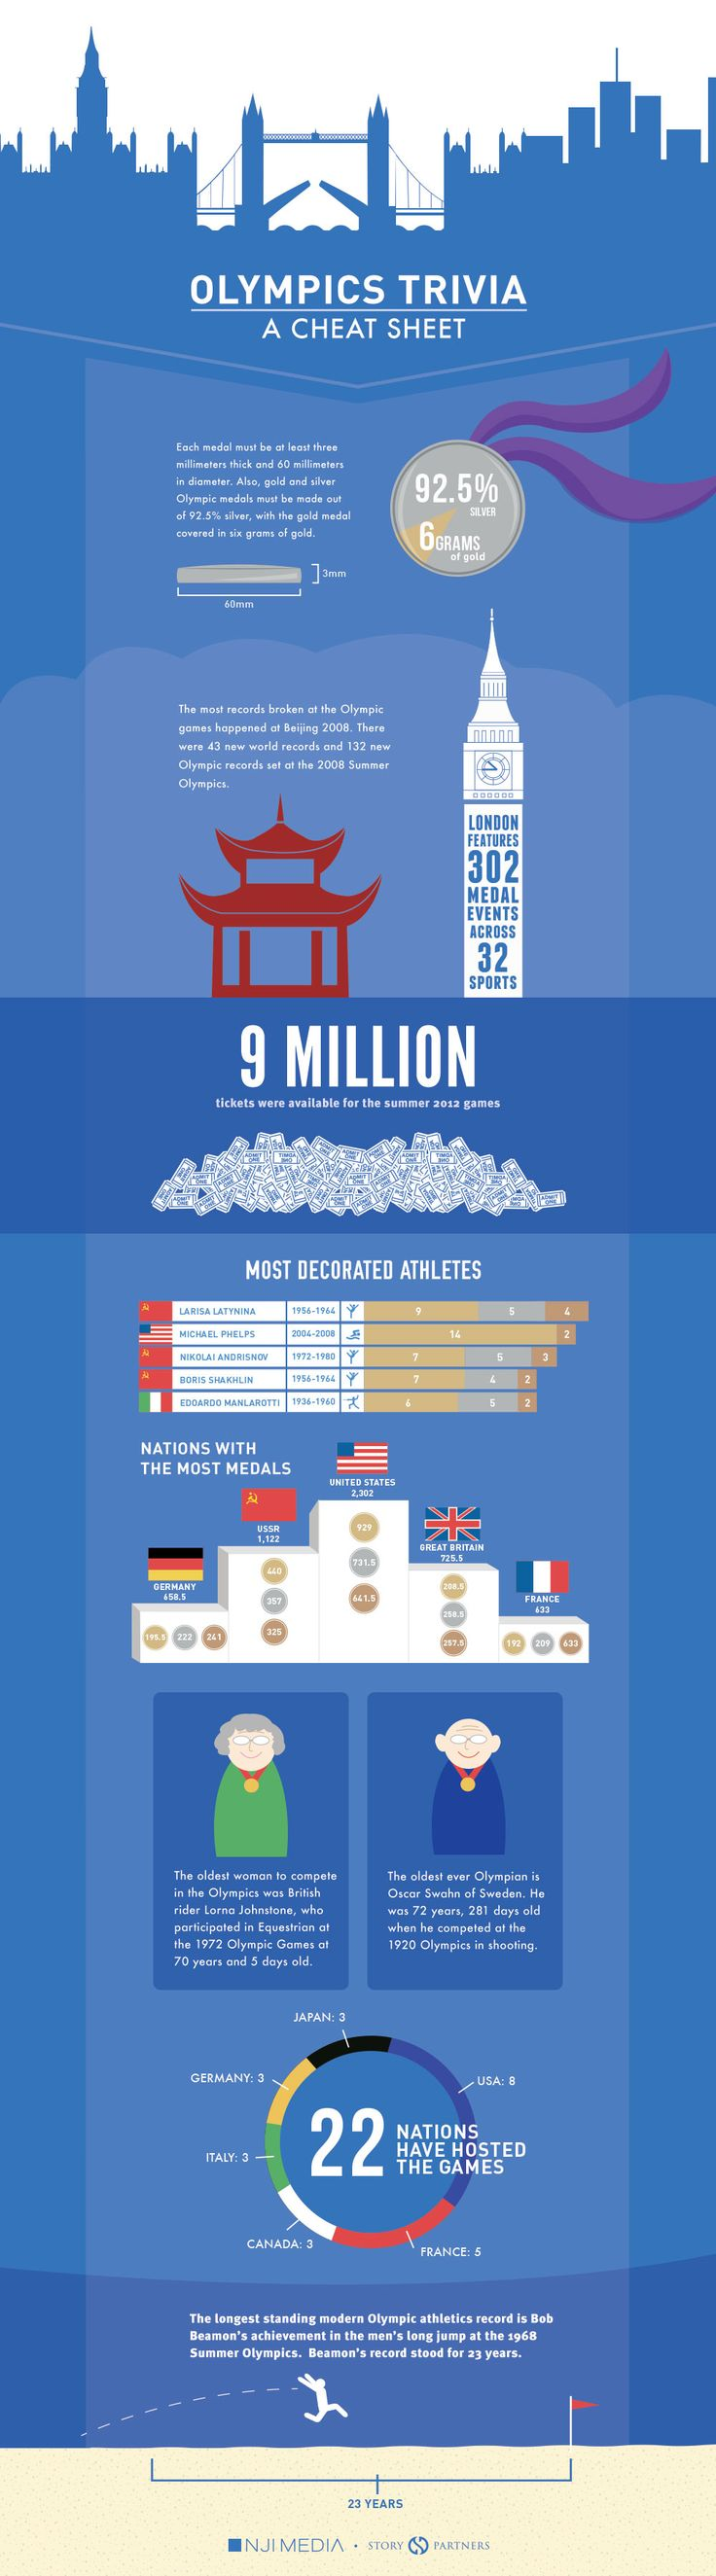 #Olympics Trivia: A Cheat Sheet  A fun infographic with a few handy Olympic trivia facts to use throughout the 2012 games.